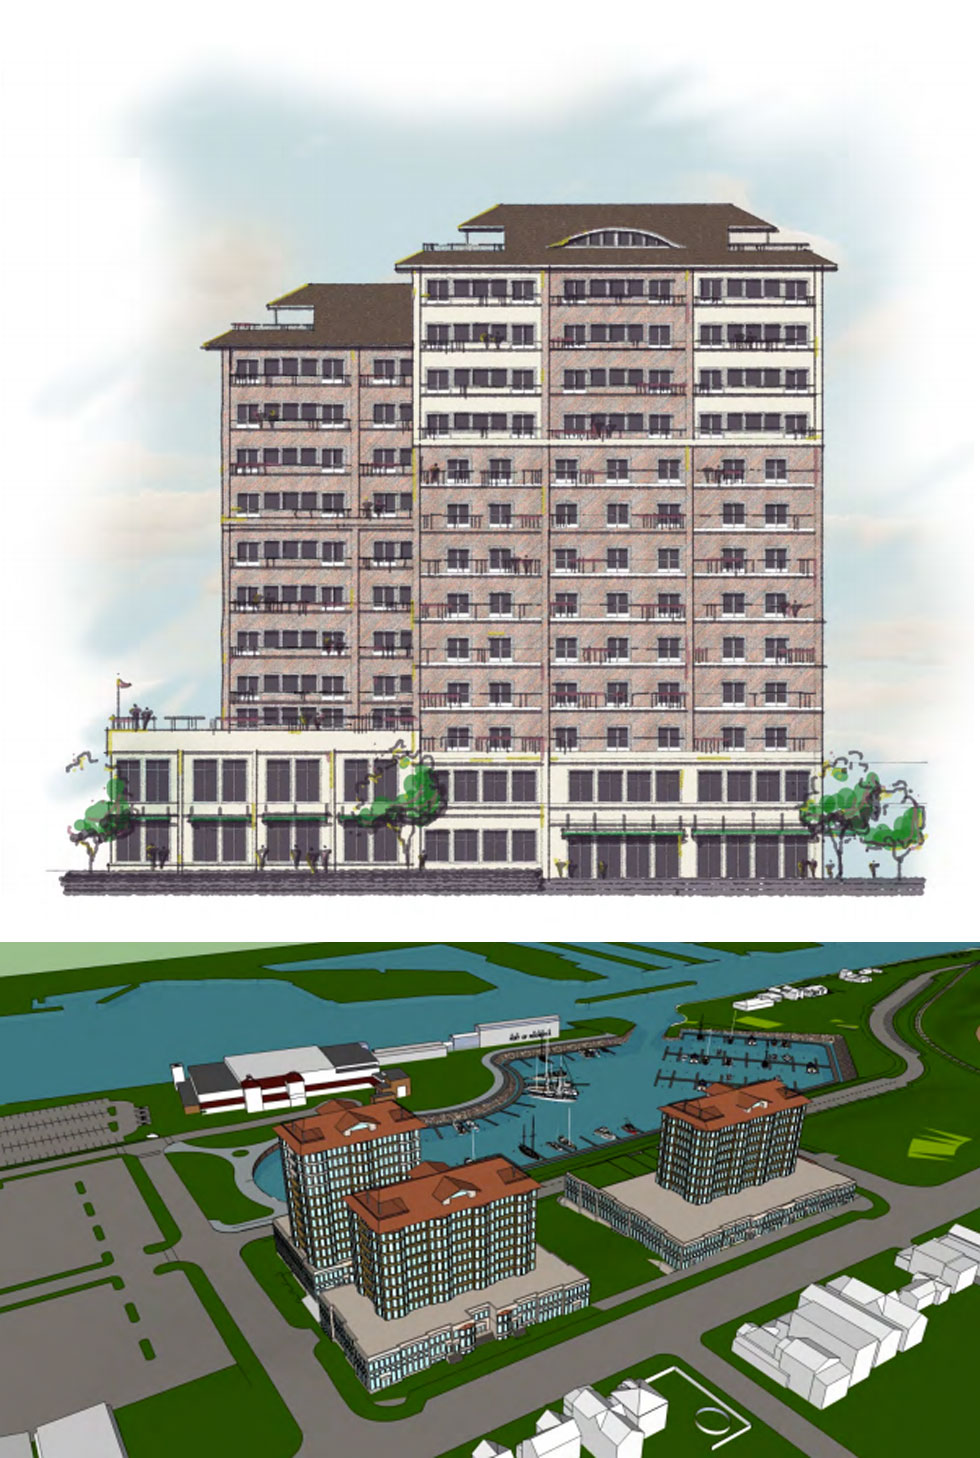 Rochester Waterfront, proposed development at Port of Rochester.